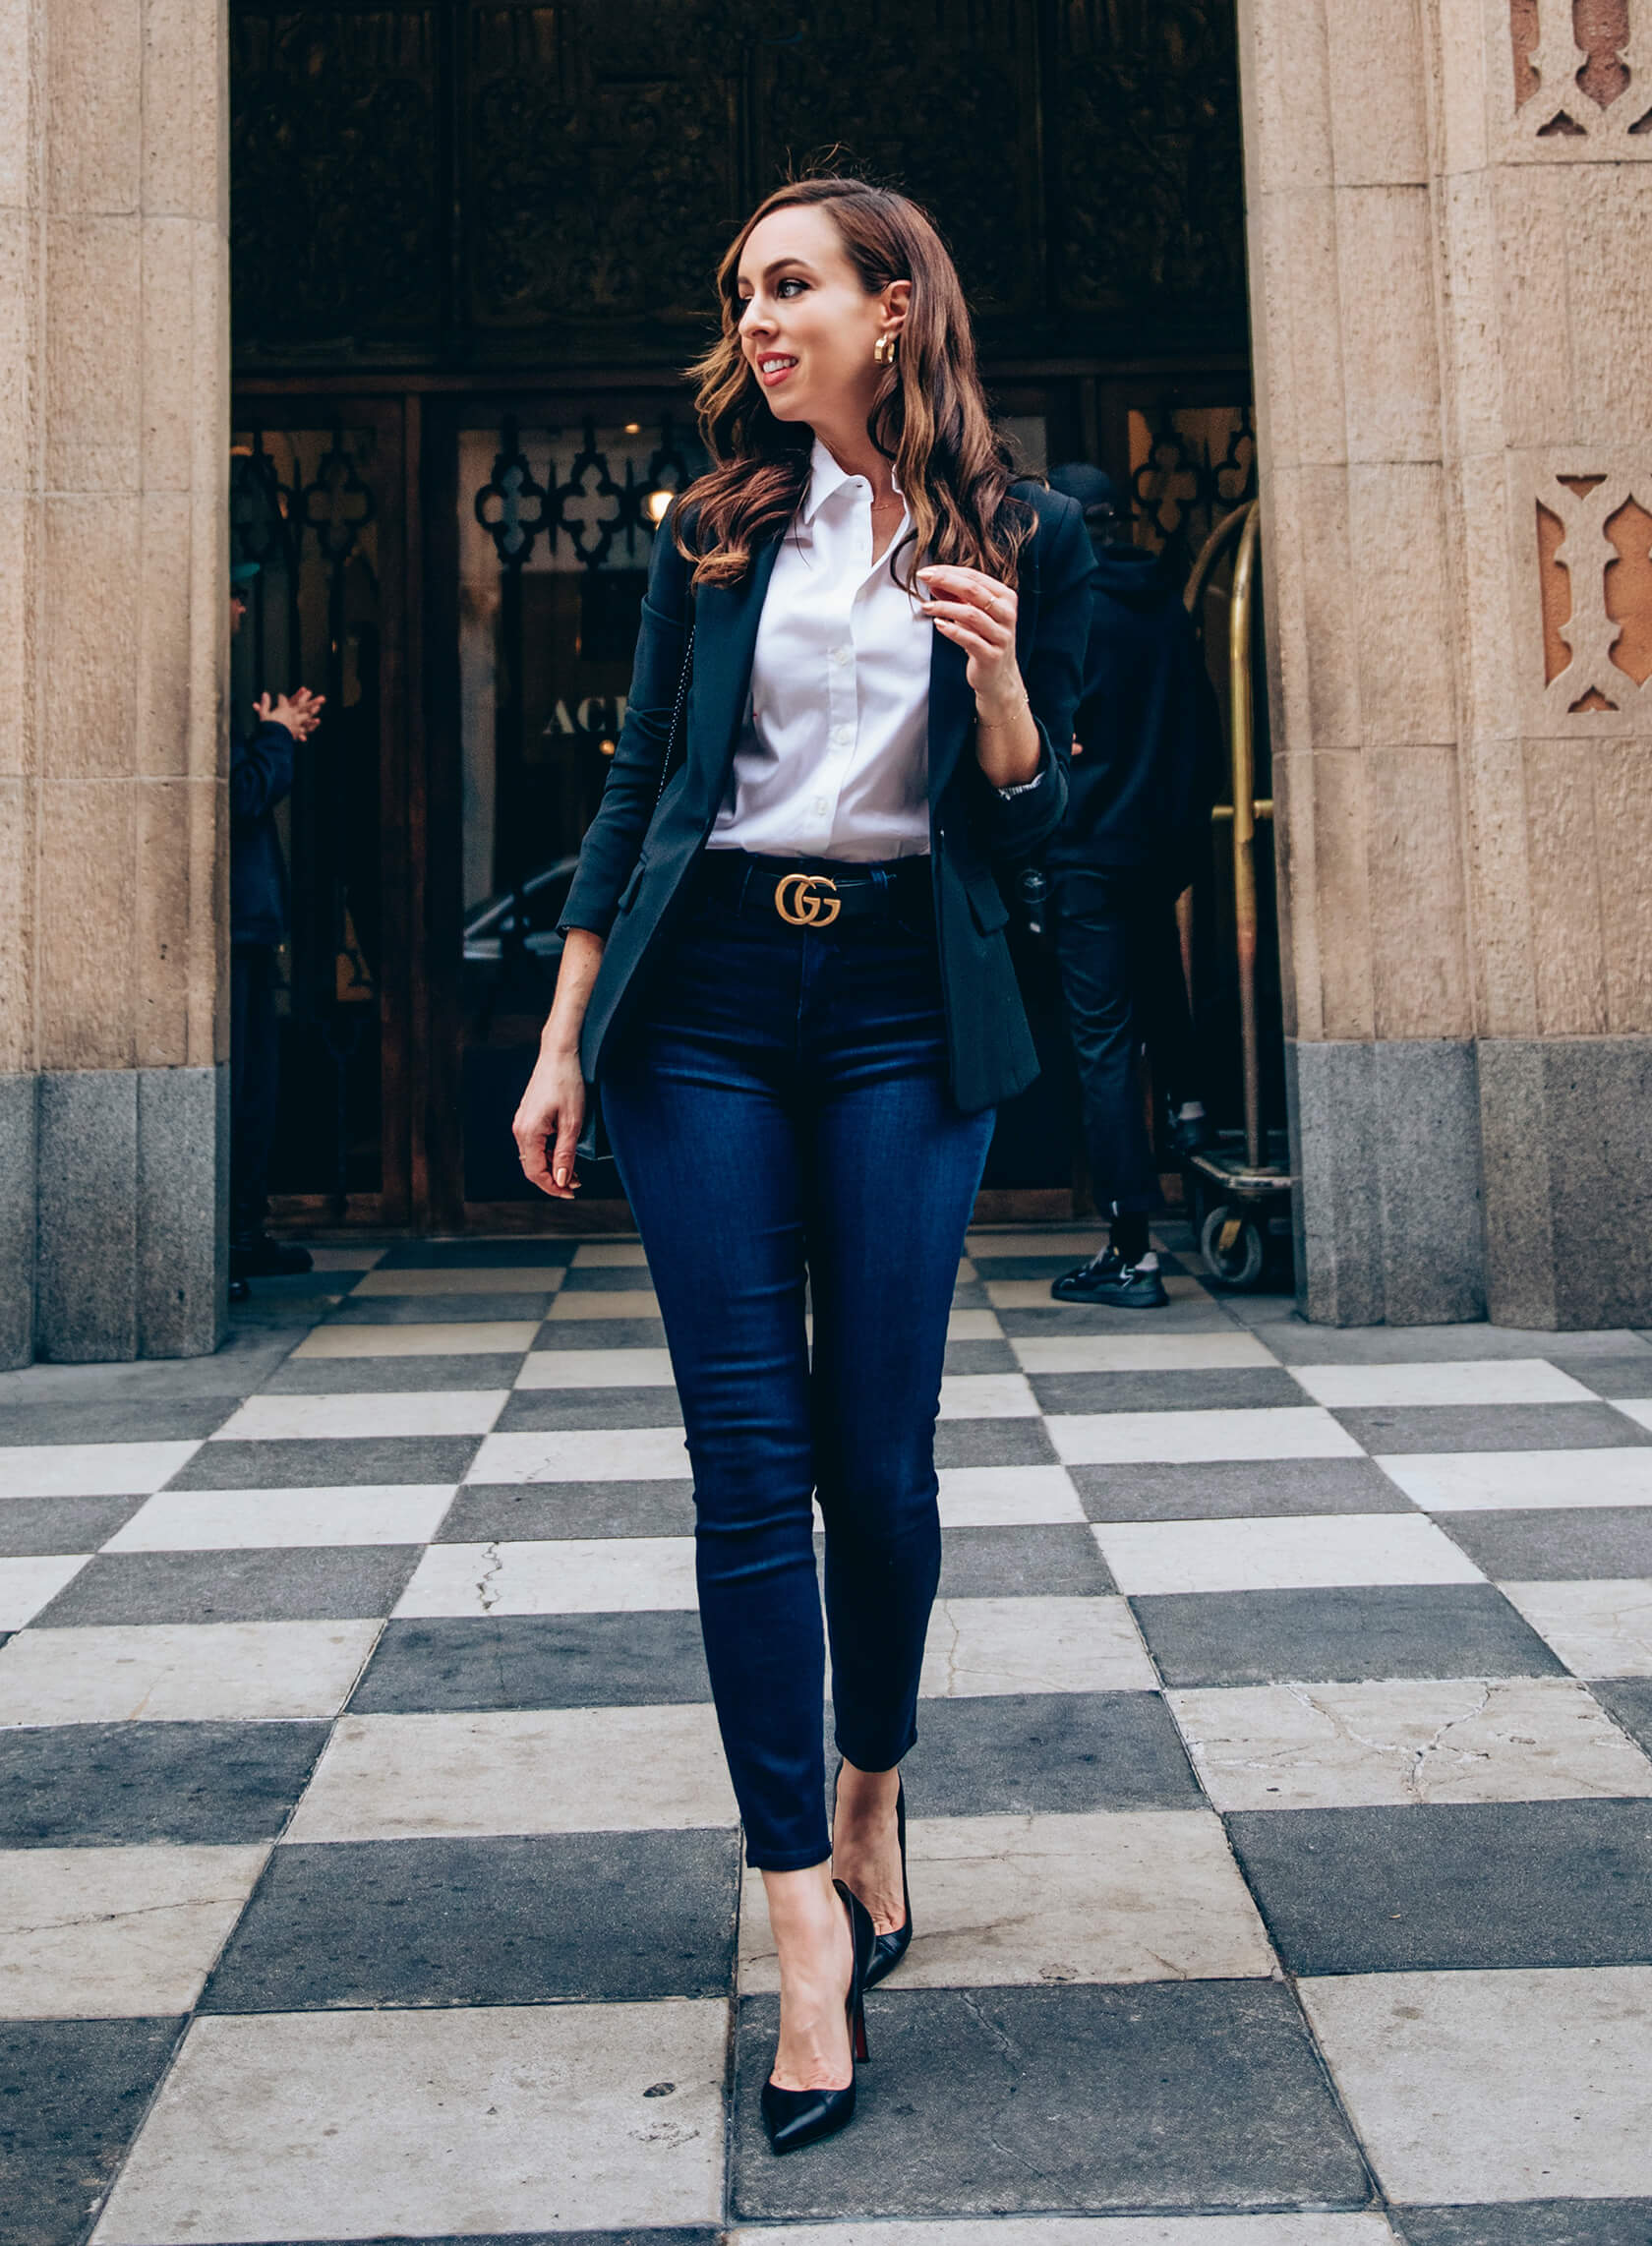 Sydne Style shows classic fashion staples every woman should own in her closet